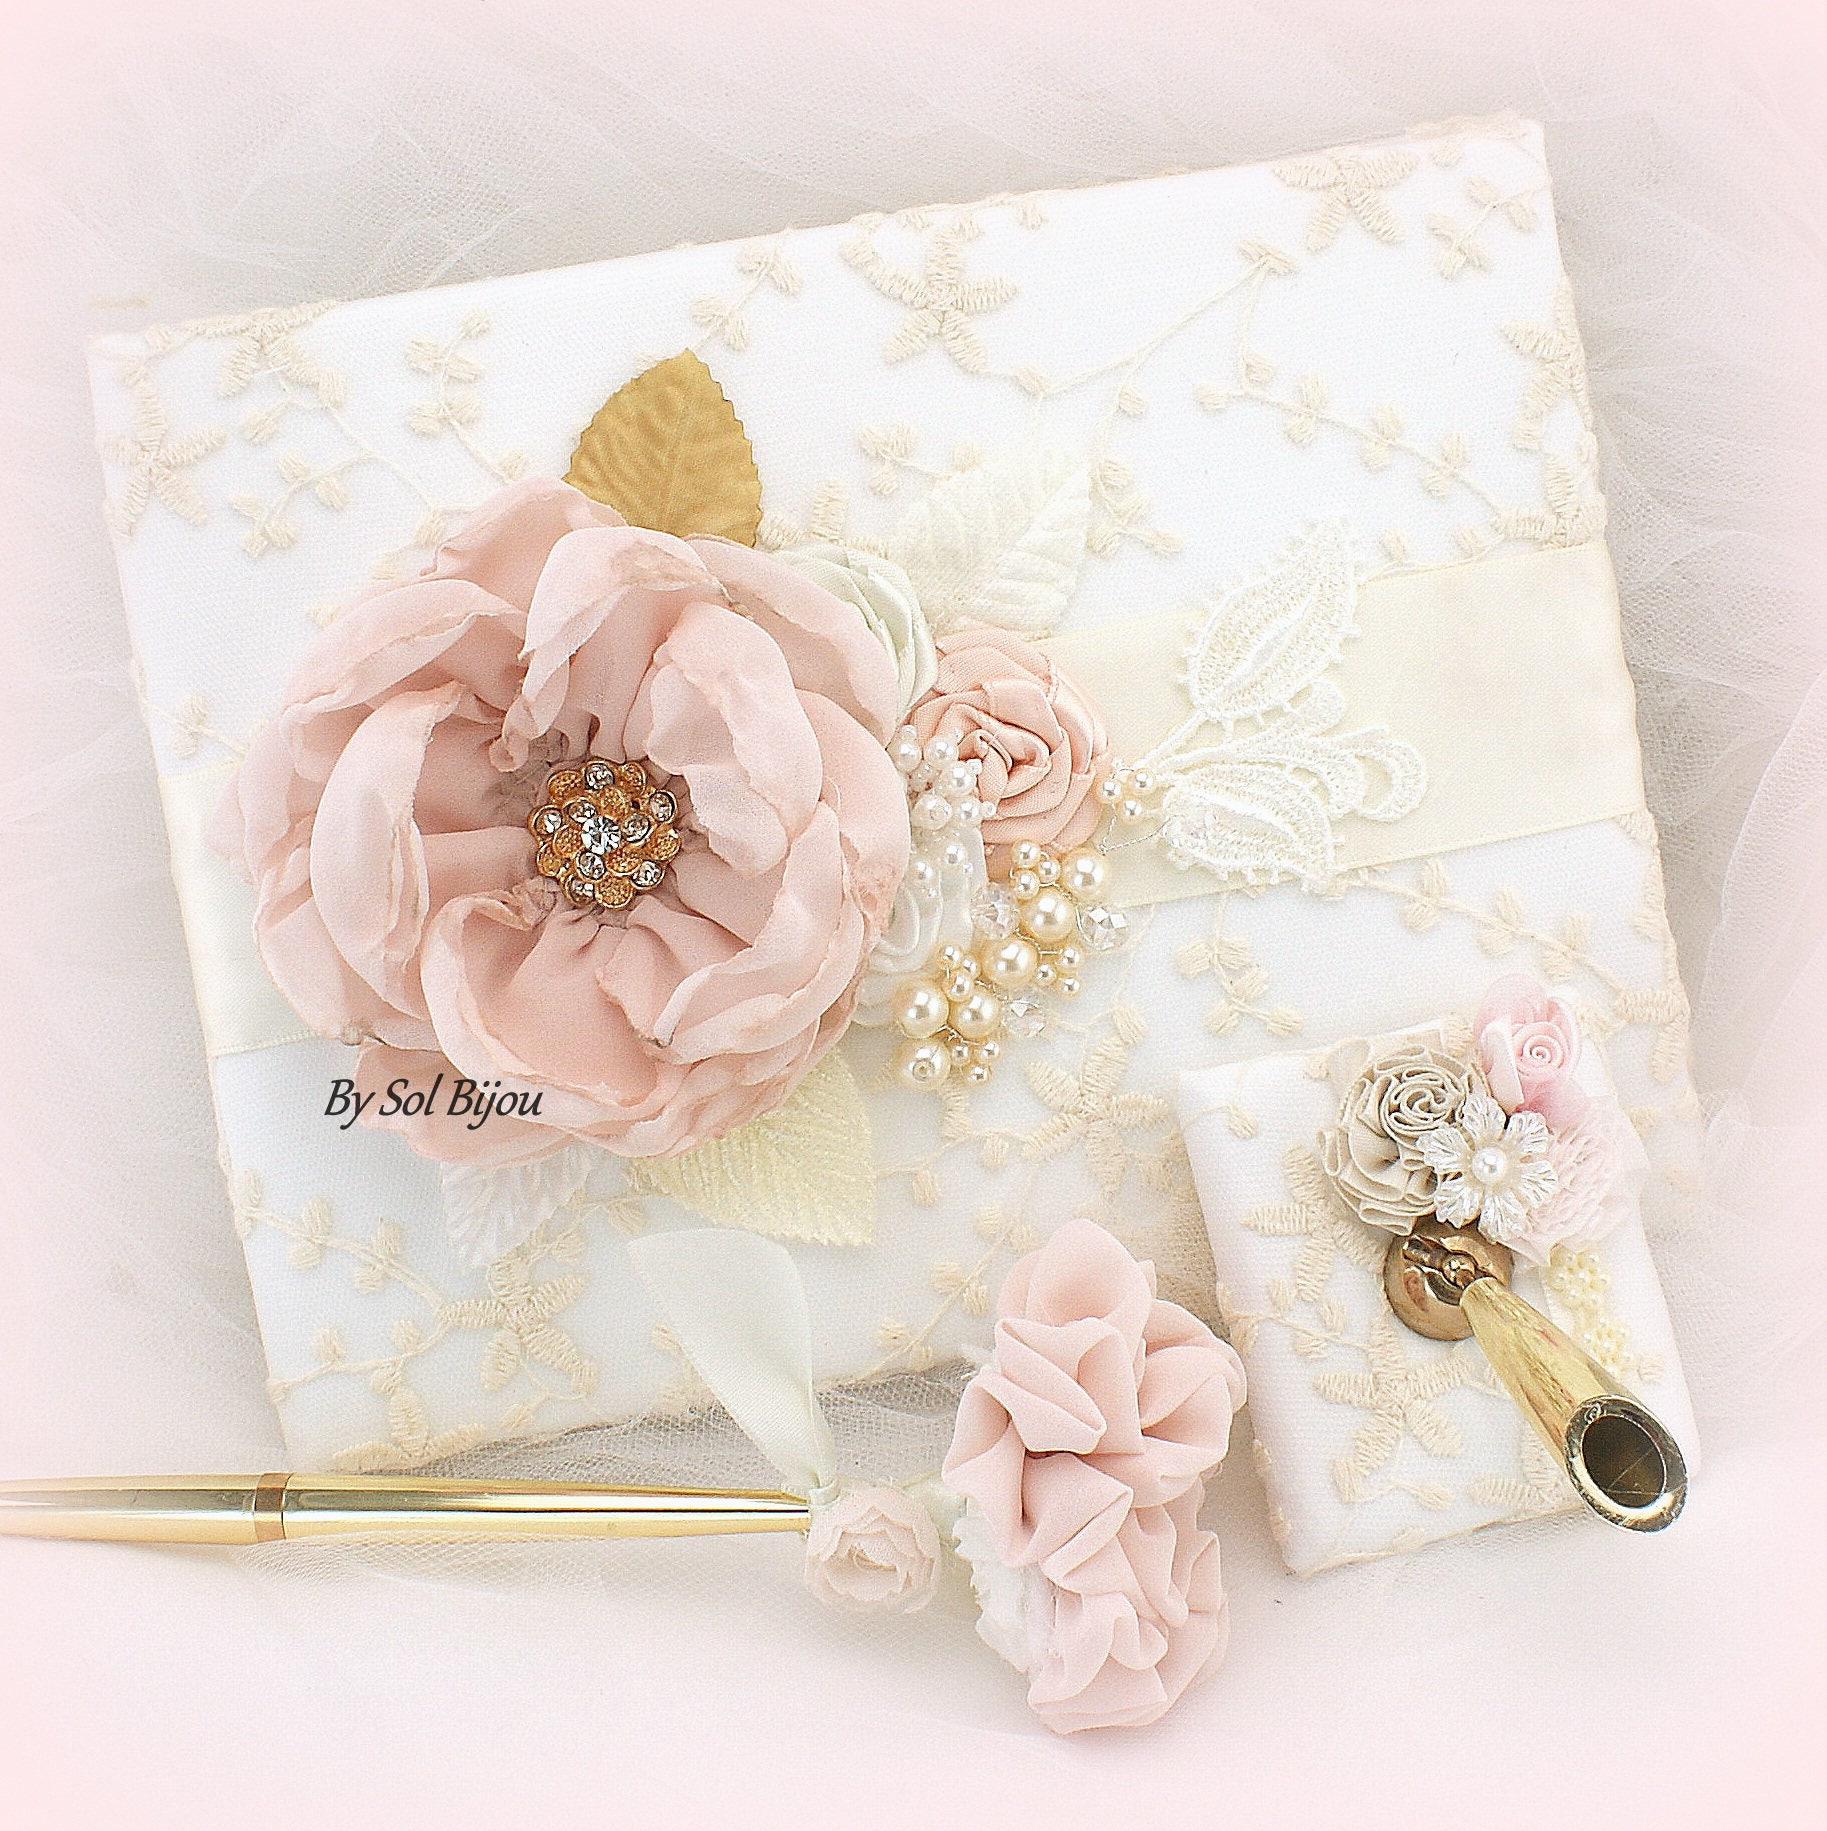 Lace Blush Pink And Gold Color: Lace Guest Book Blush White Gold Ivory Vintage Wedding